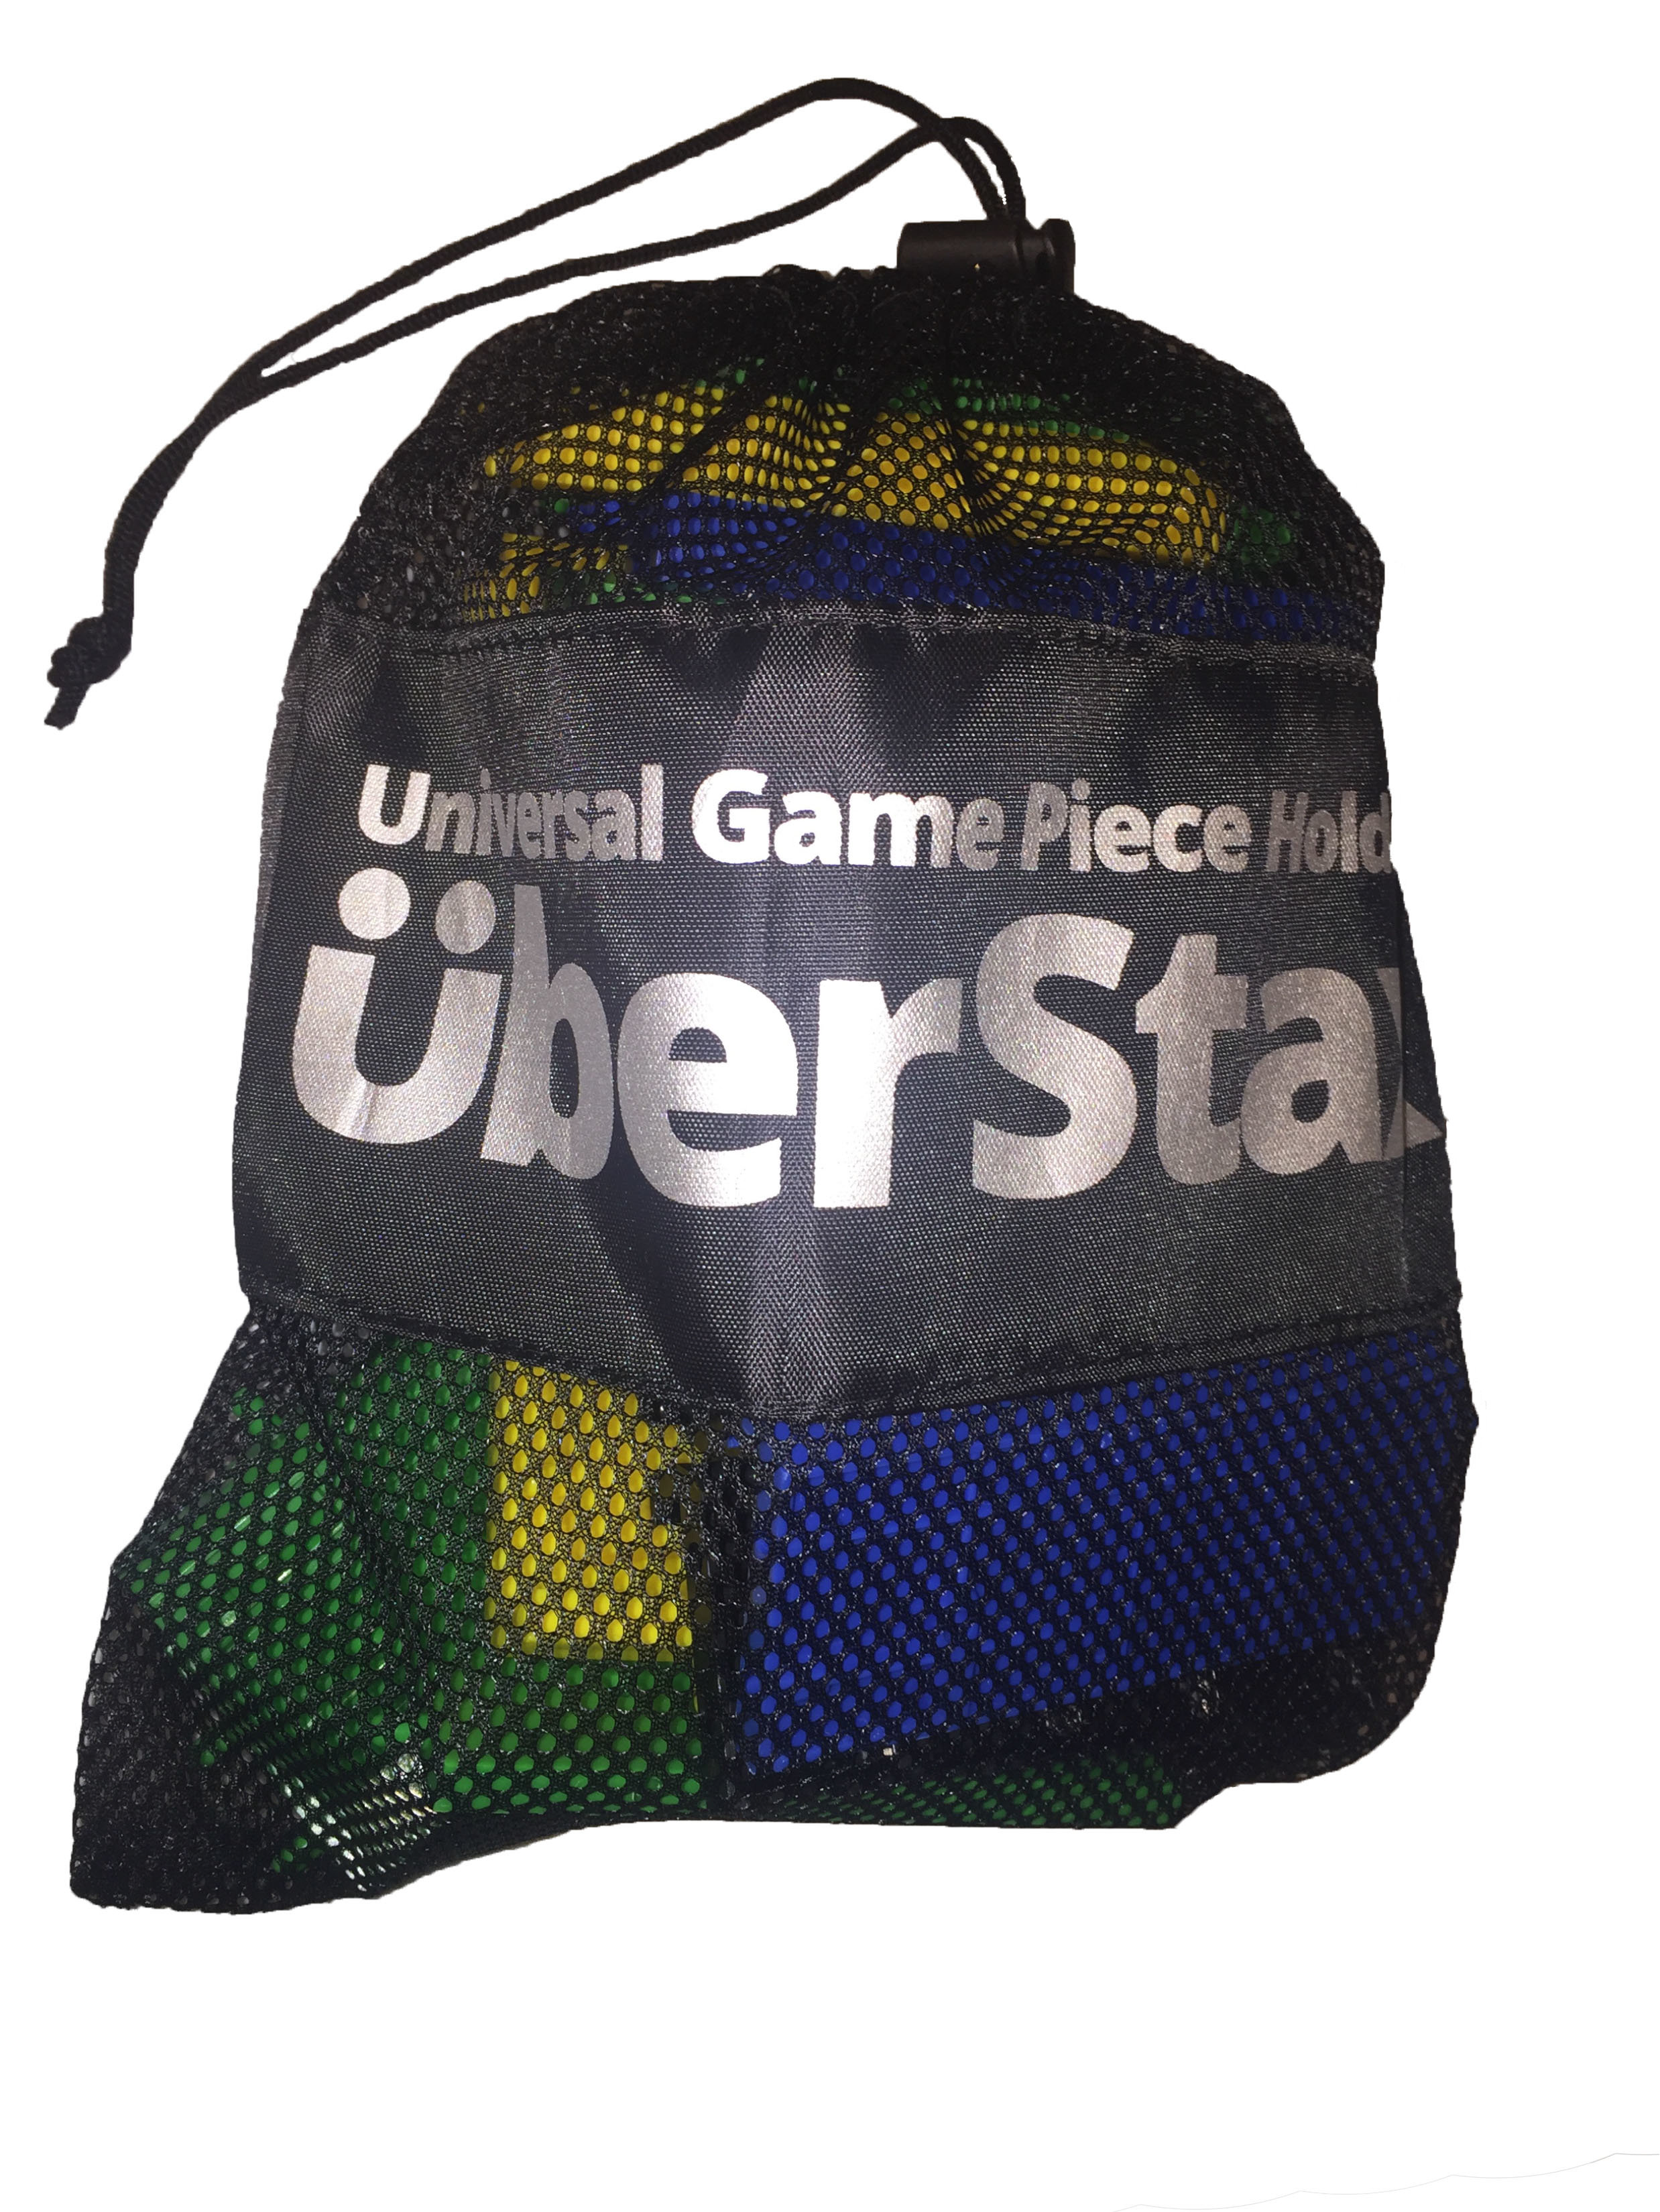 Example Storage Bag With UberStax Inside